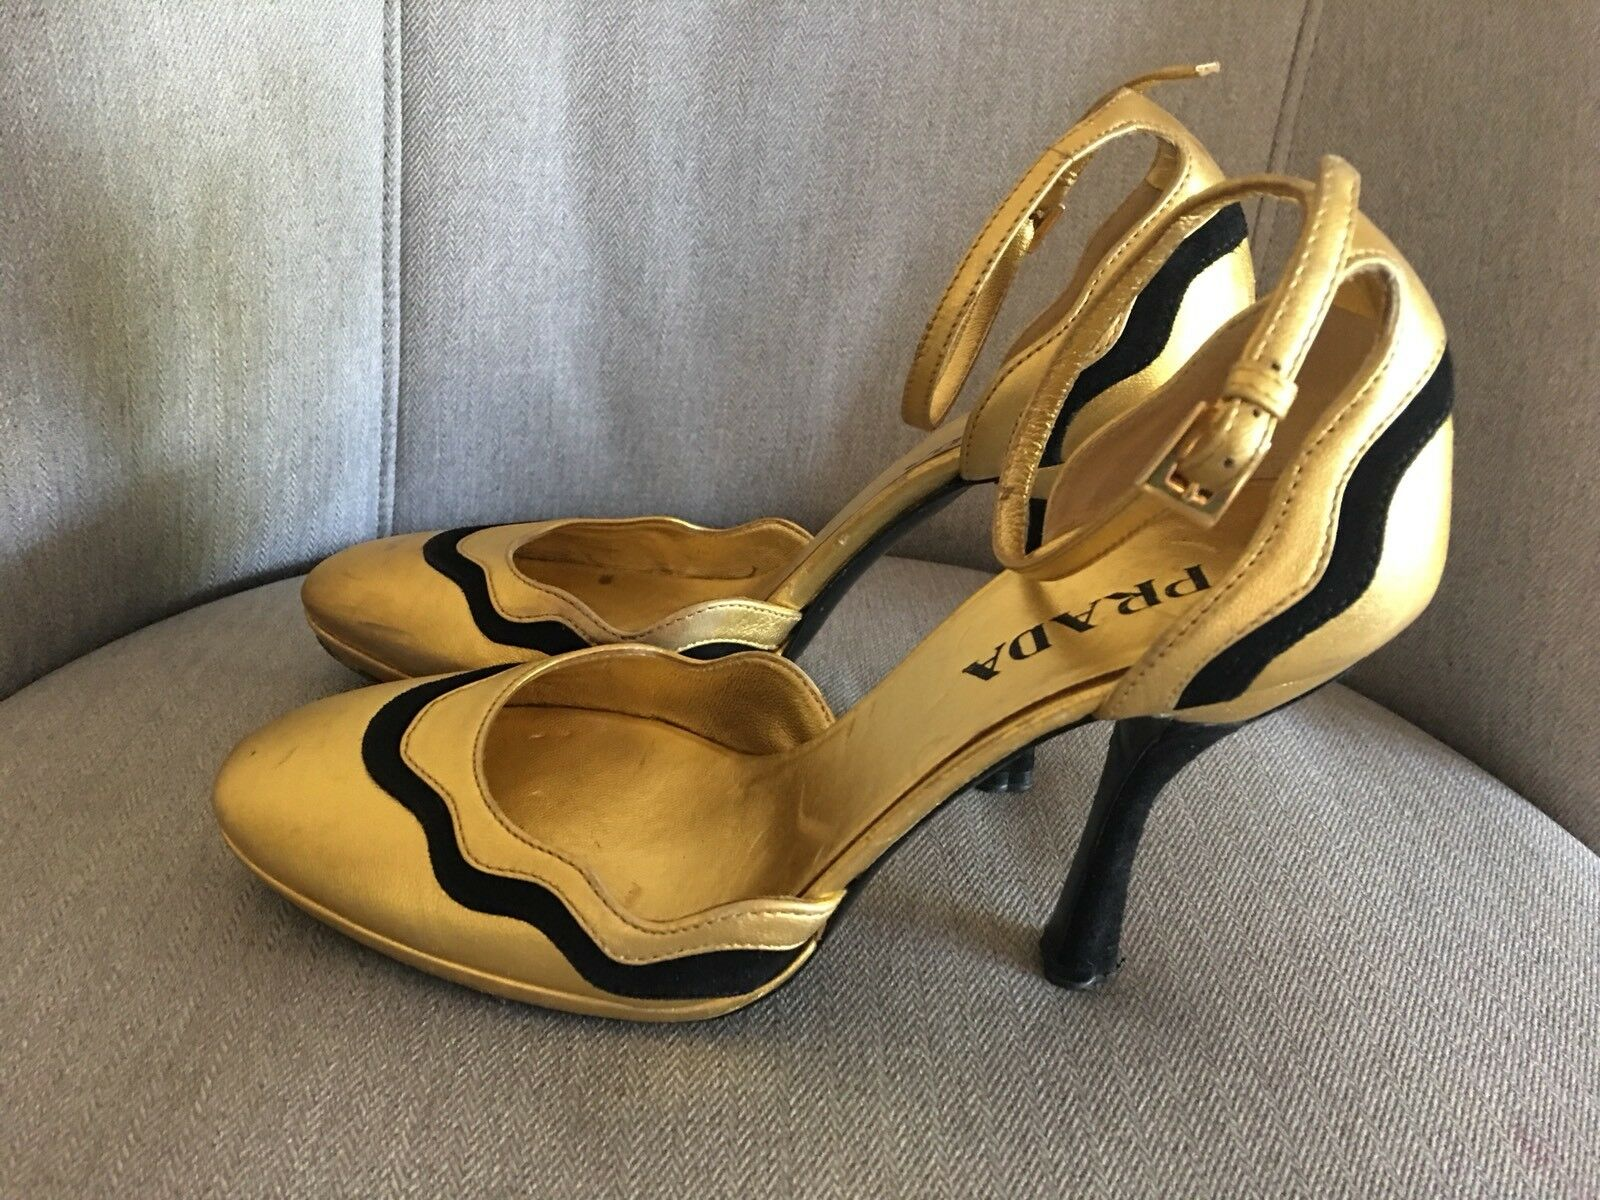 Prada oro leather high heels Ankle Strap scarpe 5.5 M